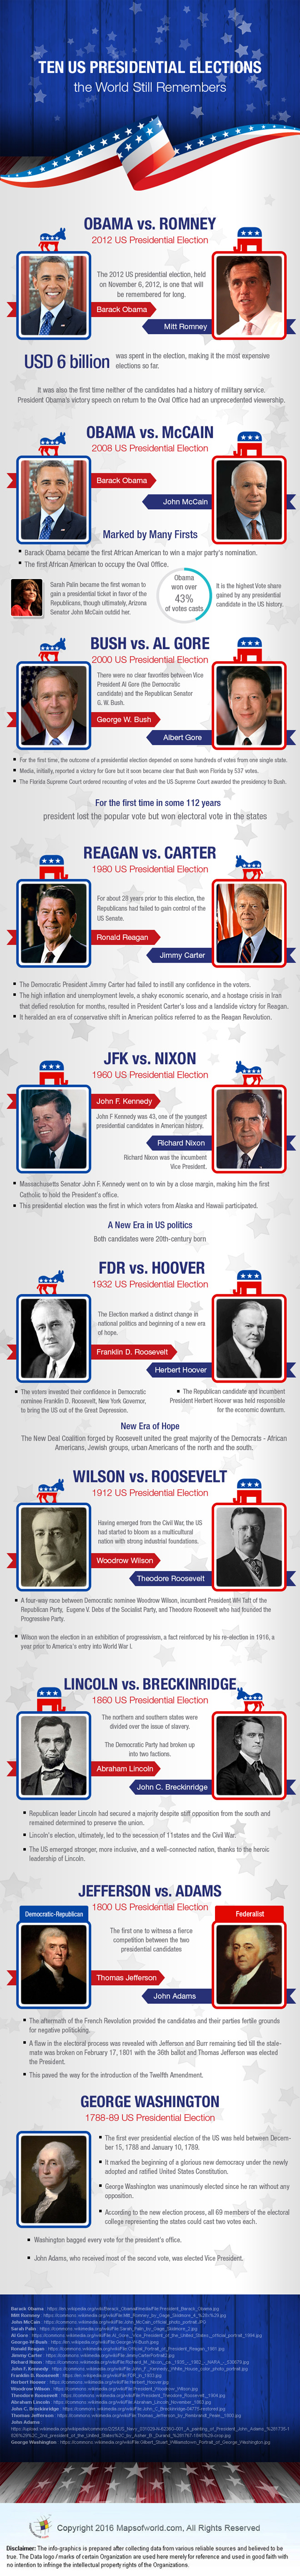 Ten US Presidential Elections the World Still Remembers infographic